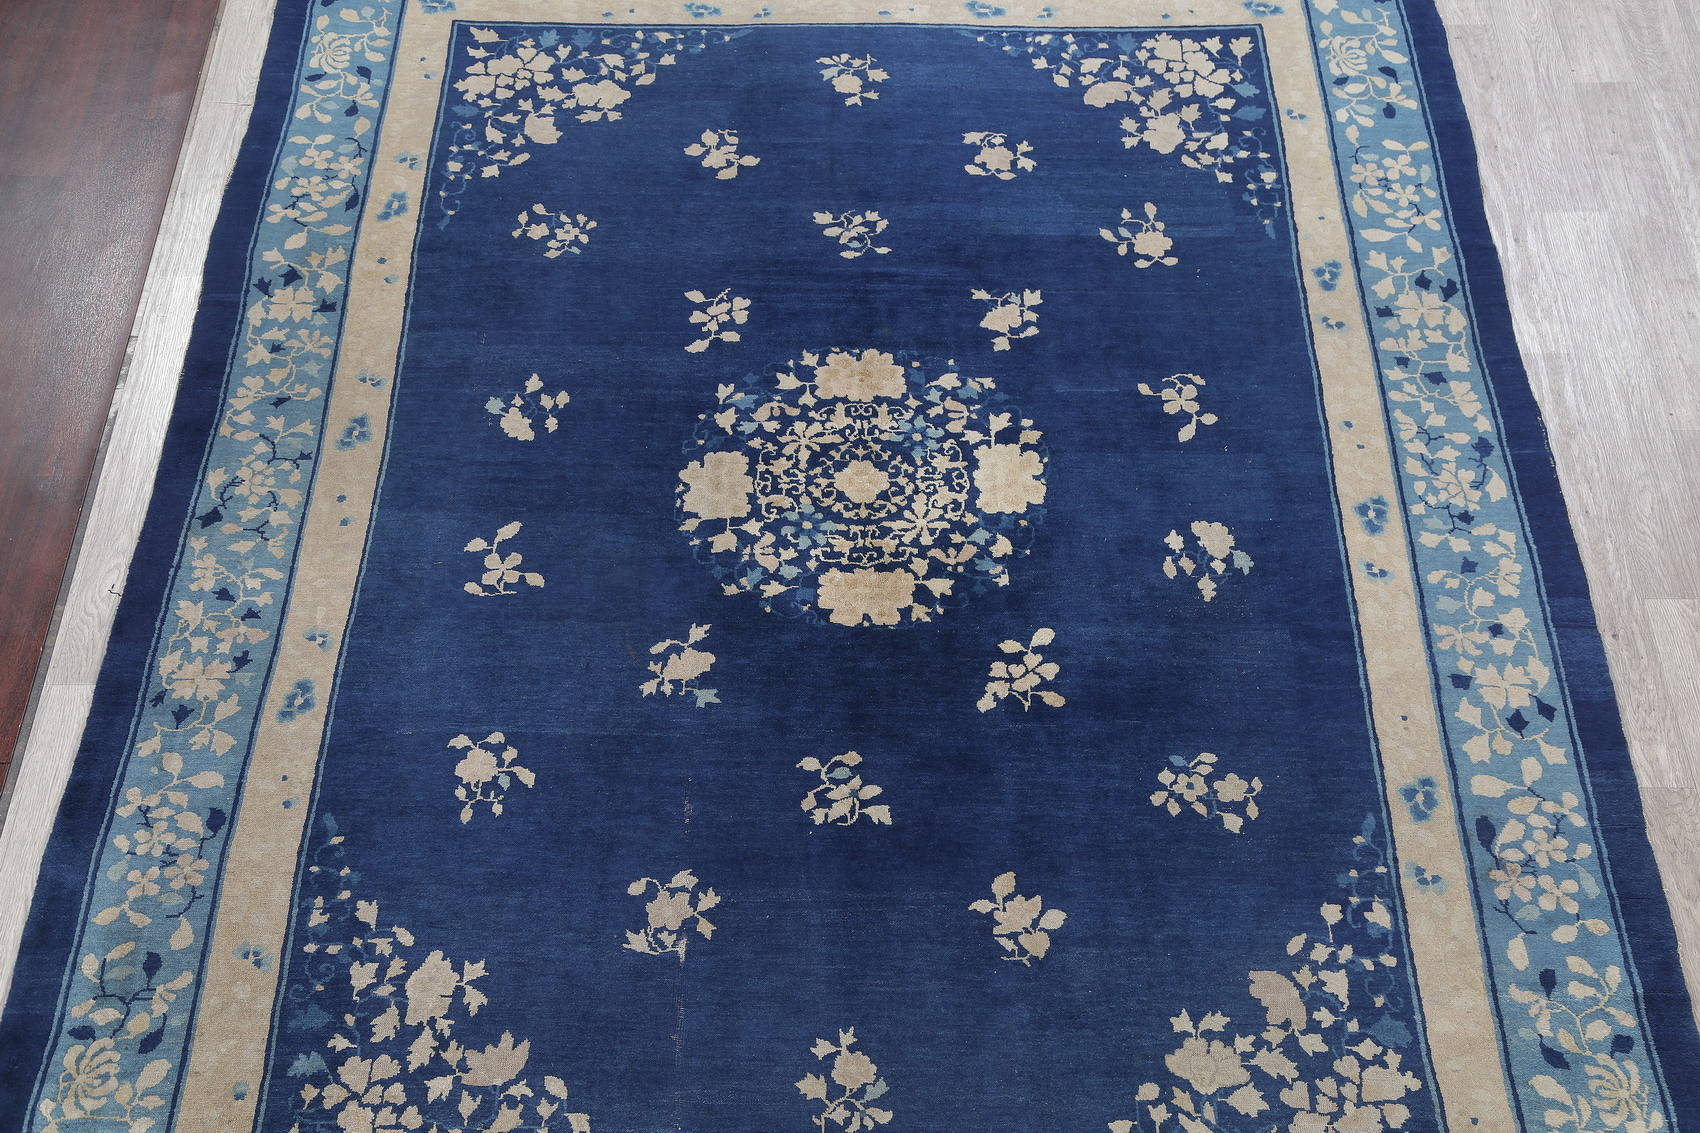 Antique Blue Peking Chinese Oriental Hand-Knotted Area Rug Wool 9x12